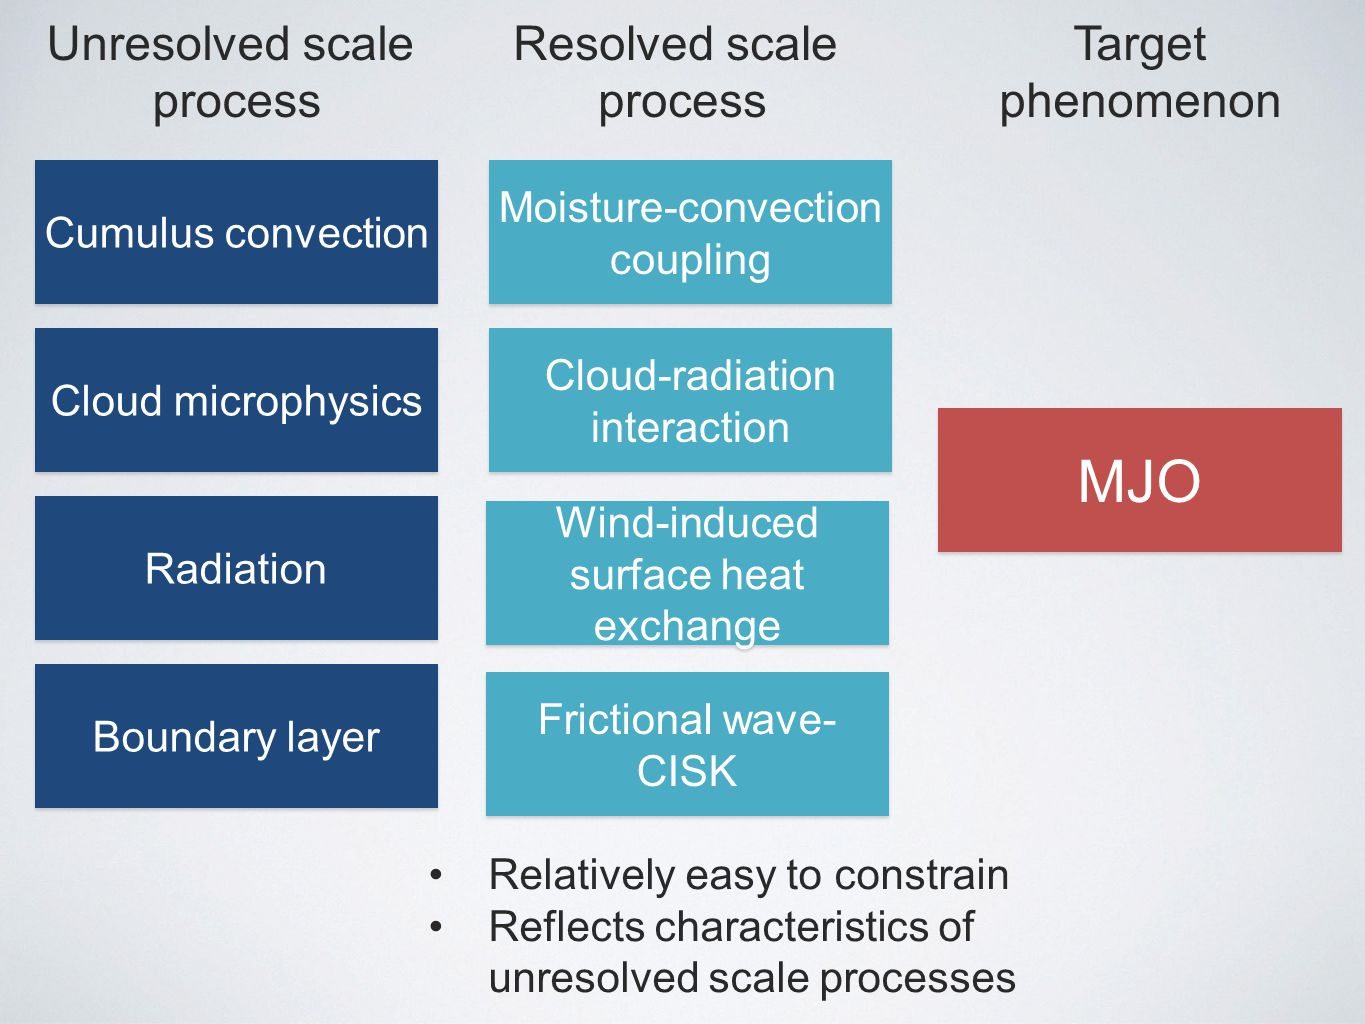 MJO Moisture-convection coupling Wind-induced surface heat exchange Cloud-radiation interaction Frictional wave- CISK Cumulus convection Cloud microphysics Radiation Boundary layer Unresolved scale process Resolved scale process Target phenomenon Relatively easy to constrain Reflects characteristics of unresolved scale processes